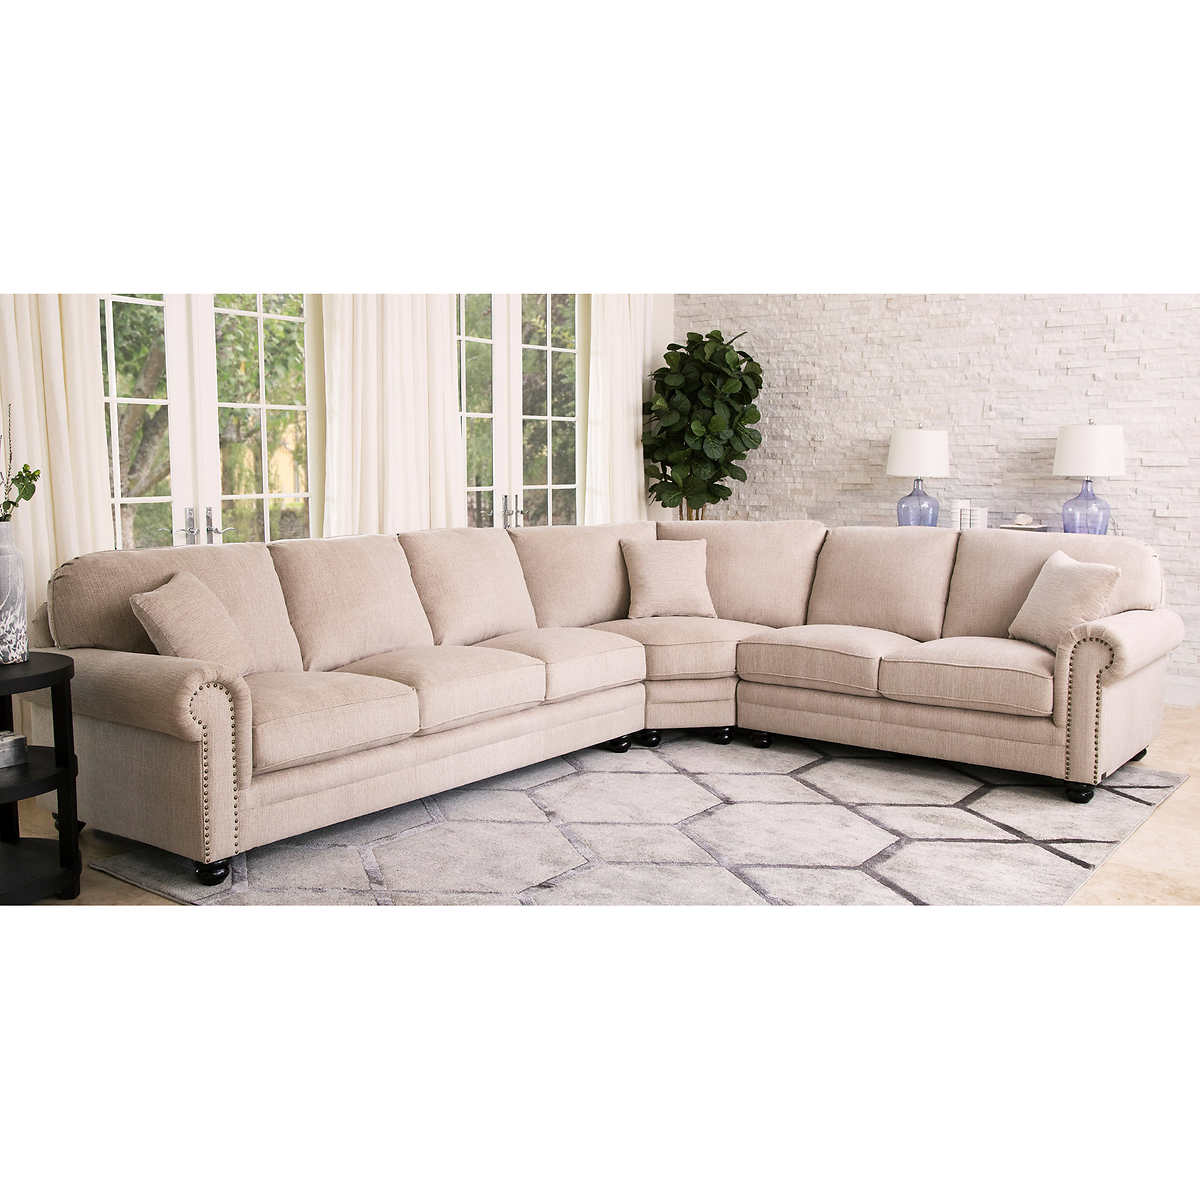 Fabric Sofas amp Sectionals